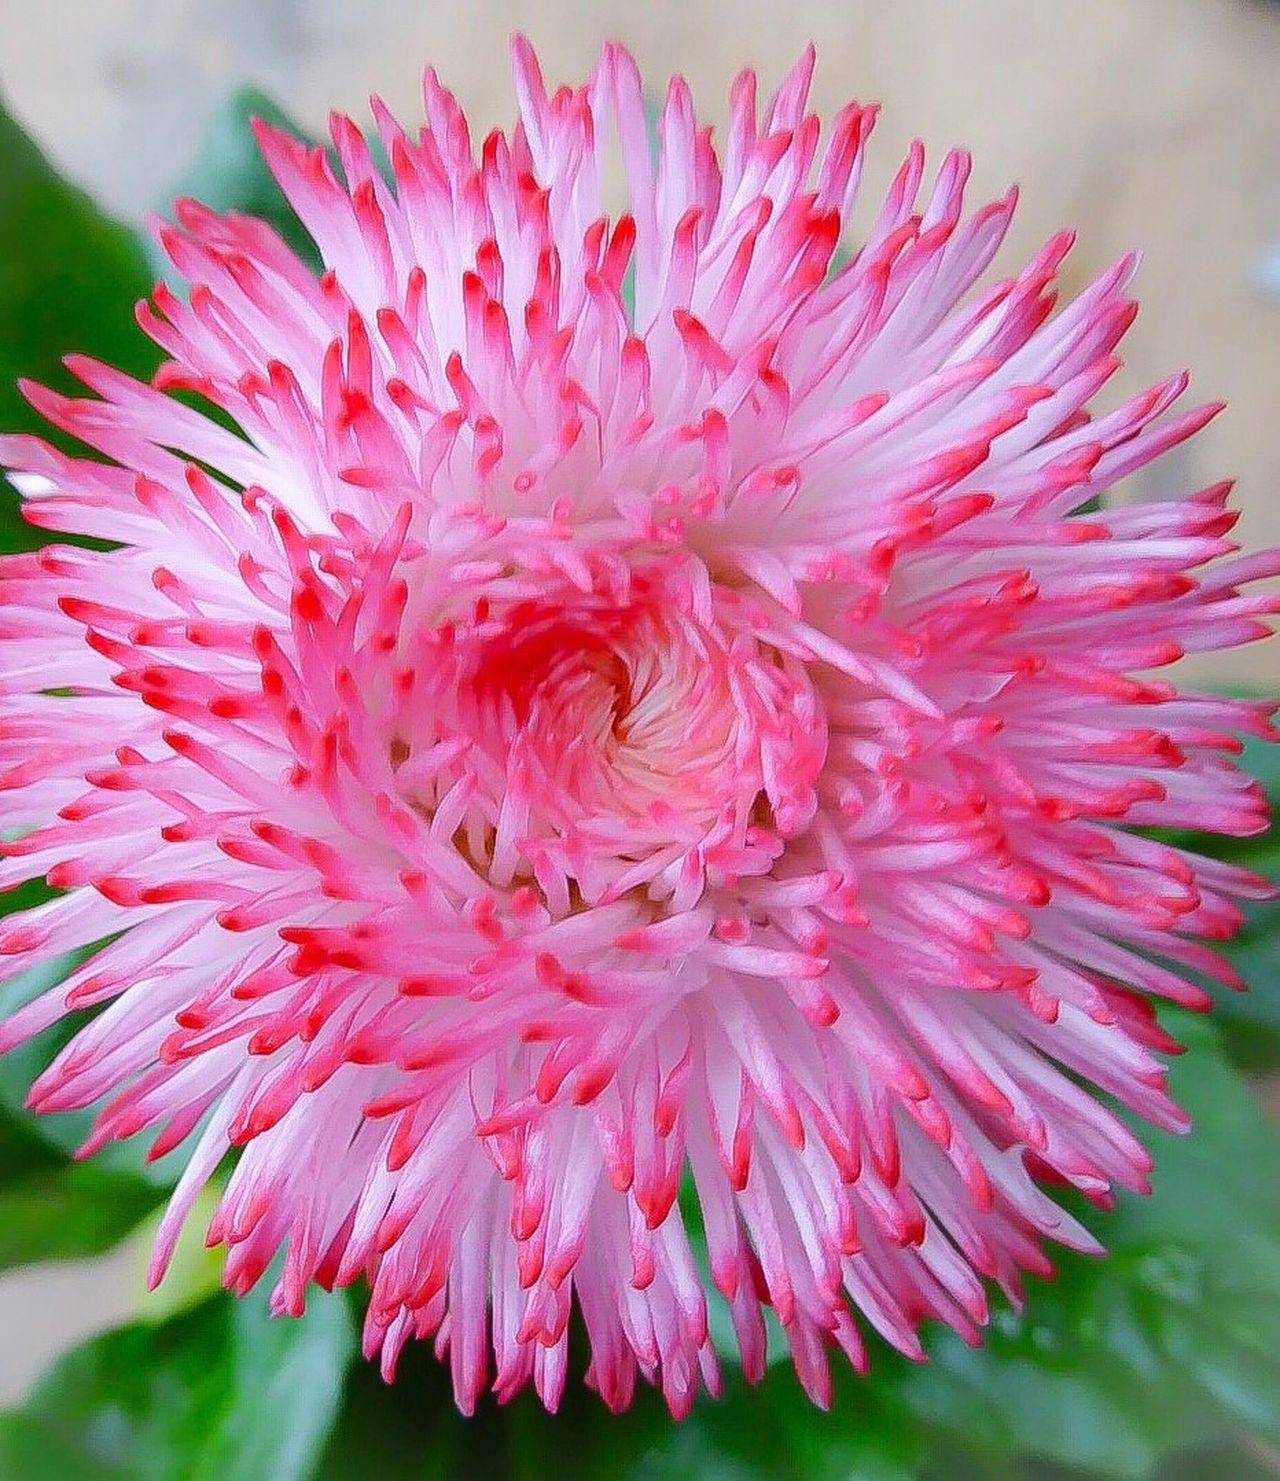 Flower Pink Color Fragility Petal Freshness Beauty In Nature Flower Head Nature Growth Close-up Plant Blooming Outdoors No People Day Chrysanthemum Gerbera Daisy Dahlia Whitepinkflowerhead Pink Flower 🌺 Day Out Lovely Day Today Close Up White Flower Pink Flowers